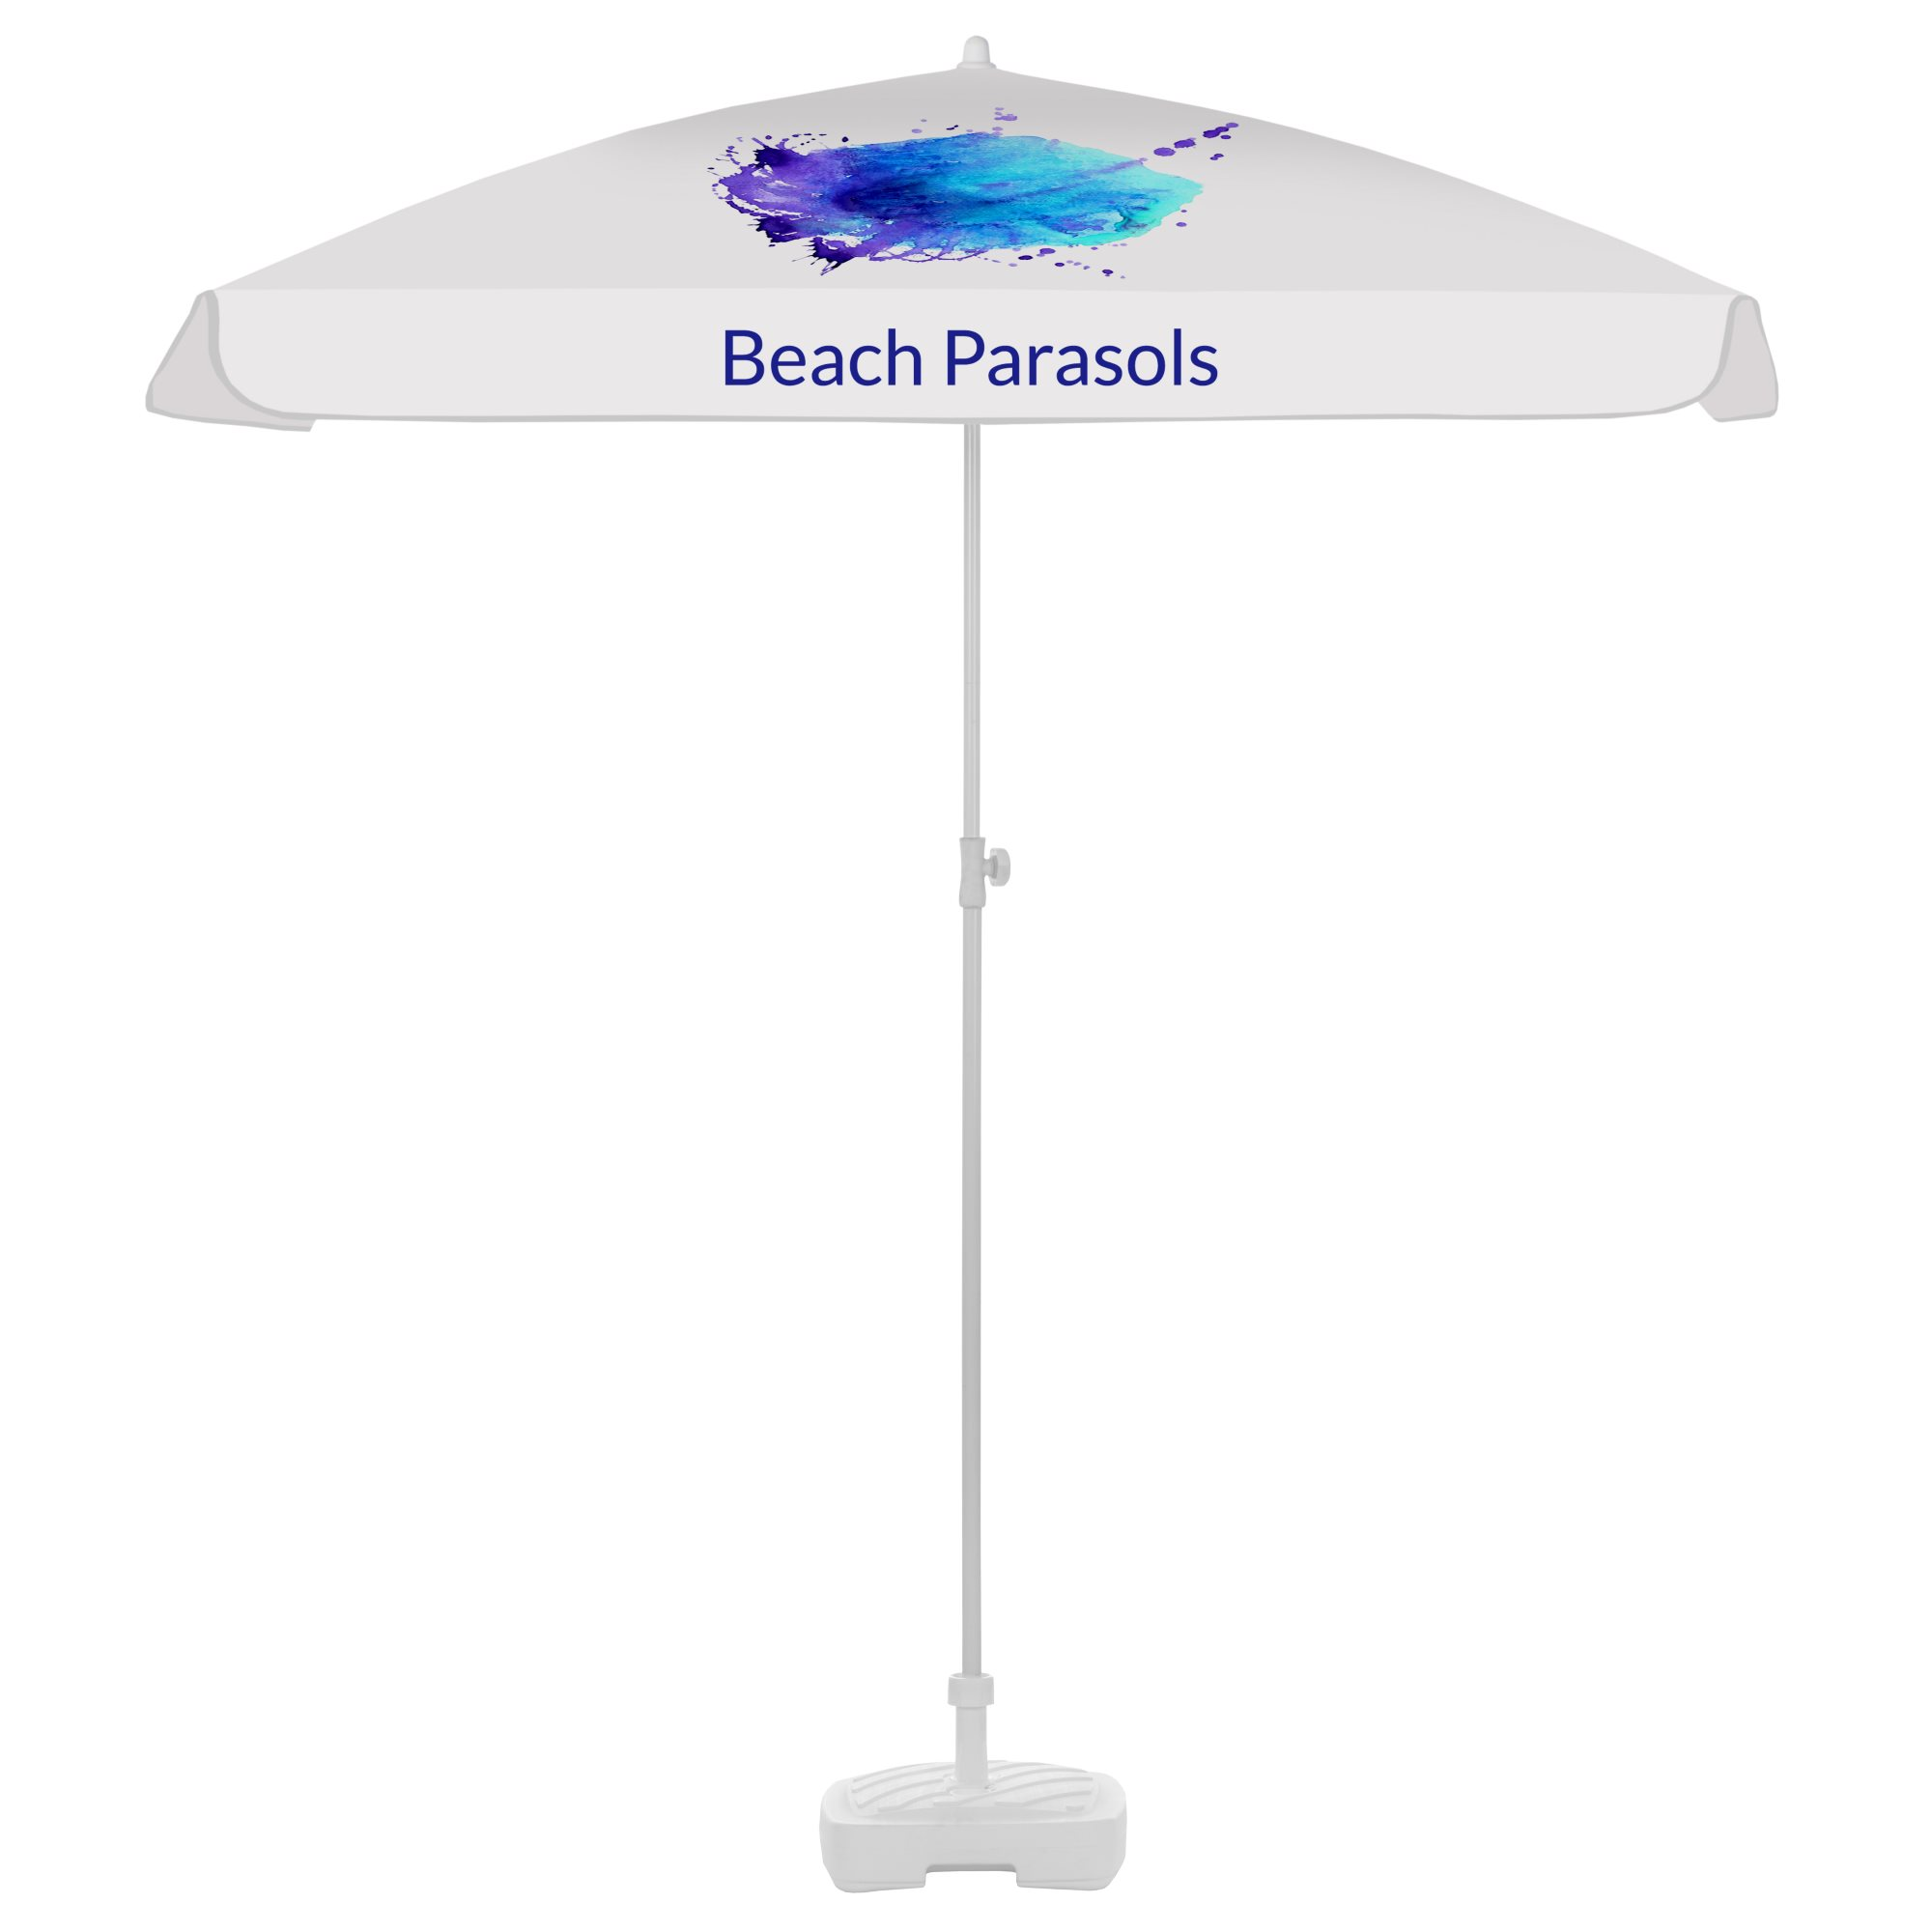 10. Beach Parasols Square 1,8m with fairing